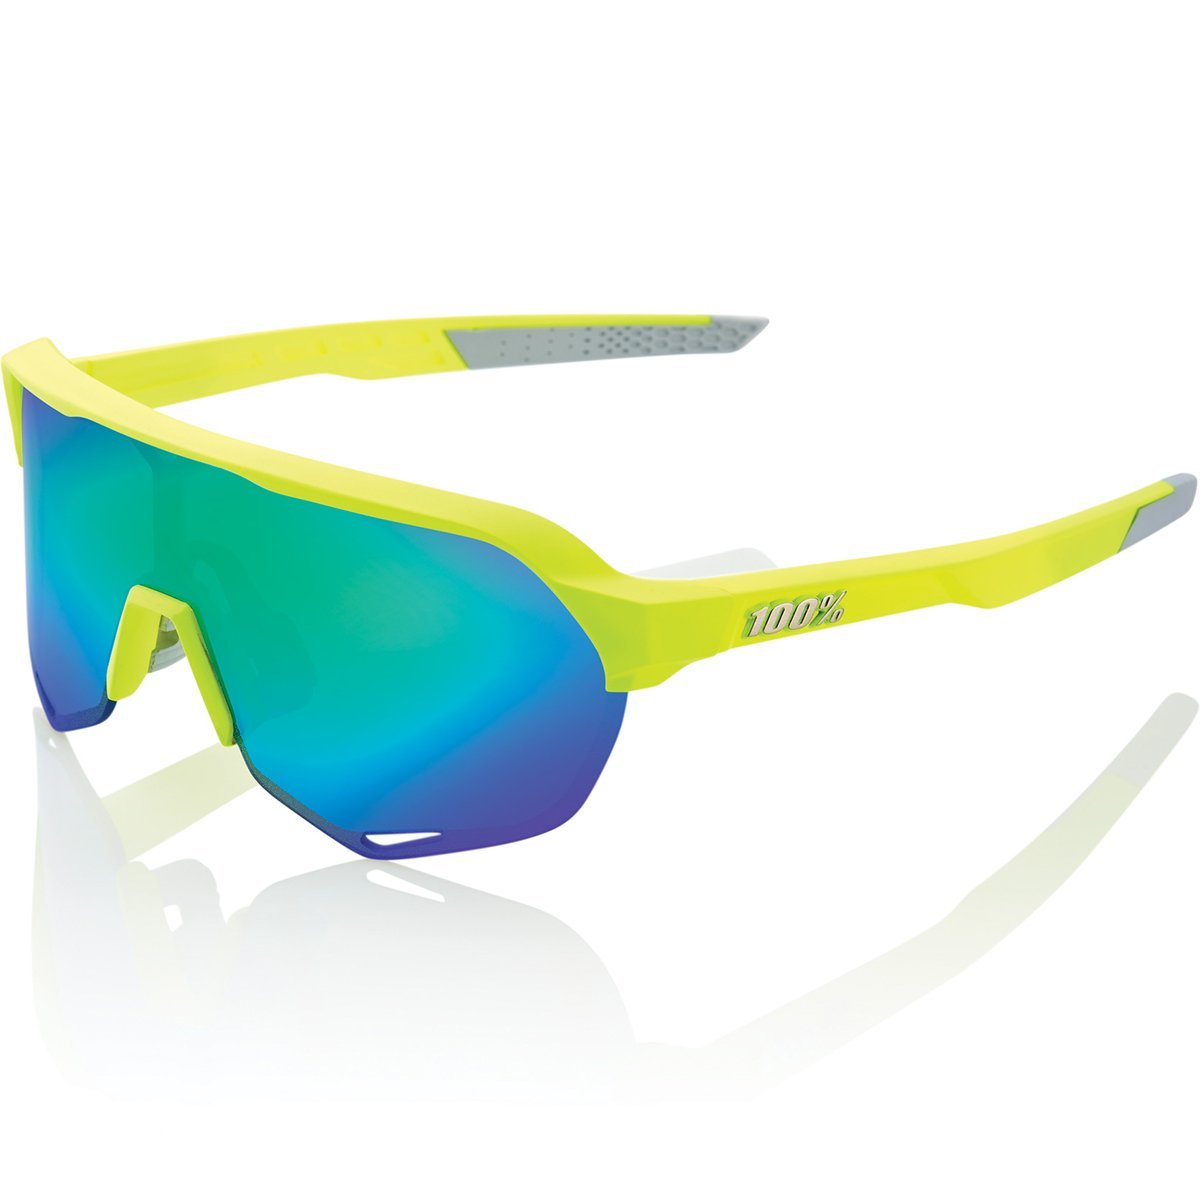 100% Cycle Clothing > Sunglasses S2 Matt Fluorescent Yellow Green Mirror Lens Sunglasses